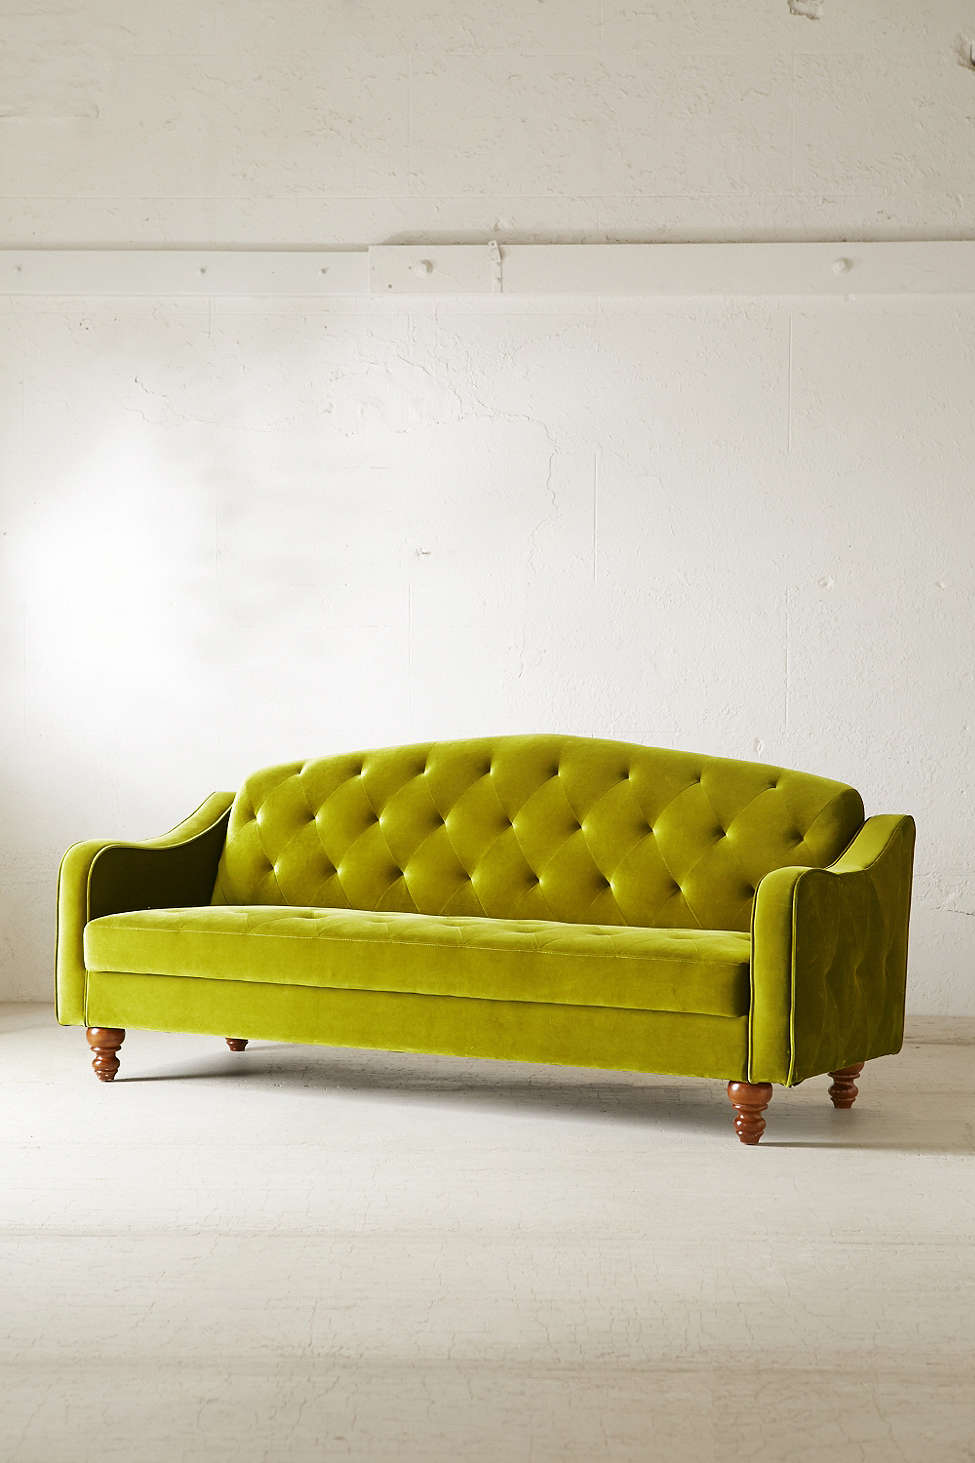 ava-velvet-tufted-sleeper-sofa-urban-outfitters.jpg